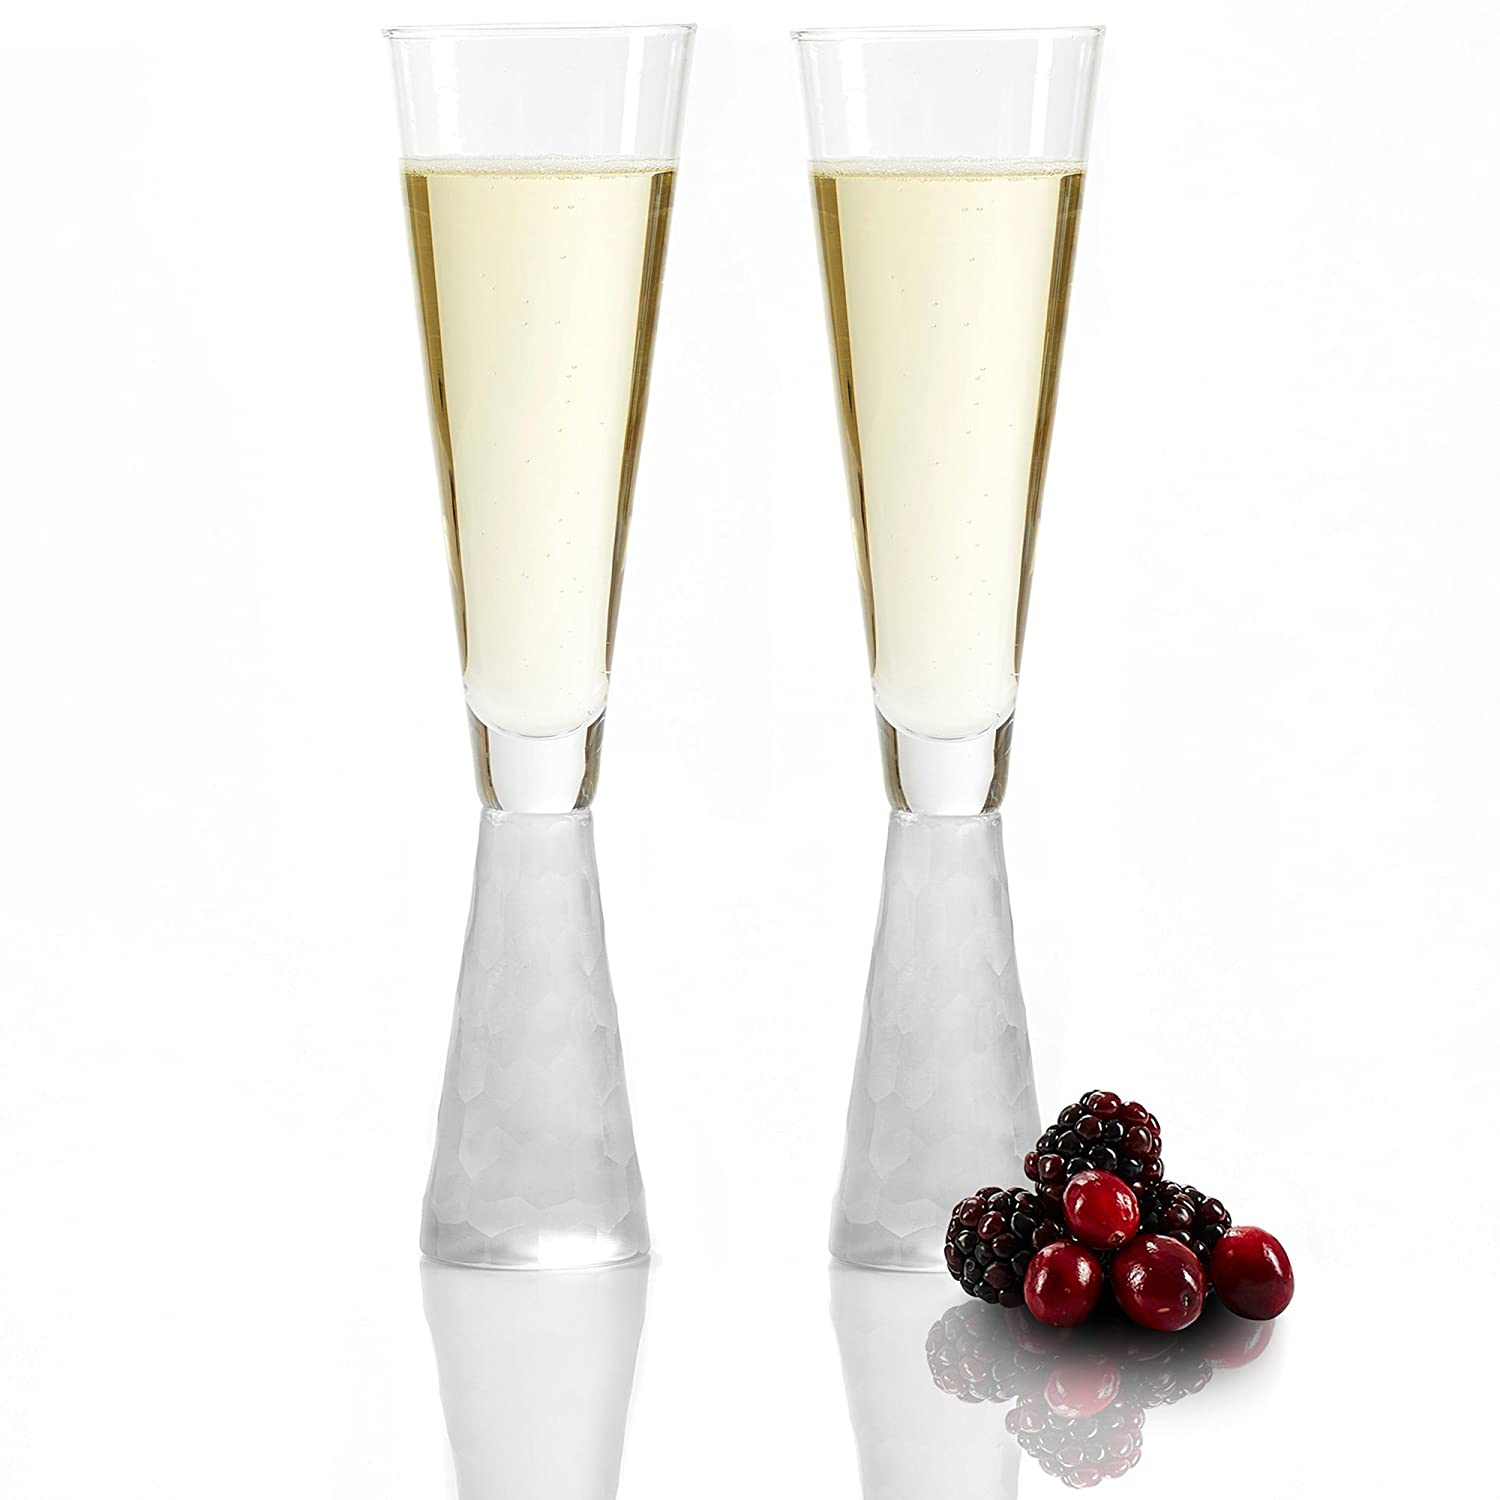 Andrew James Champagne Flutes Set of 2 Frosted Base Glasses for